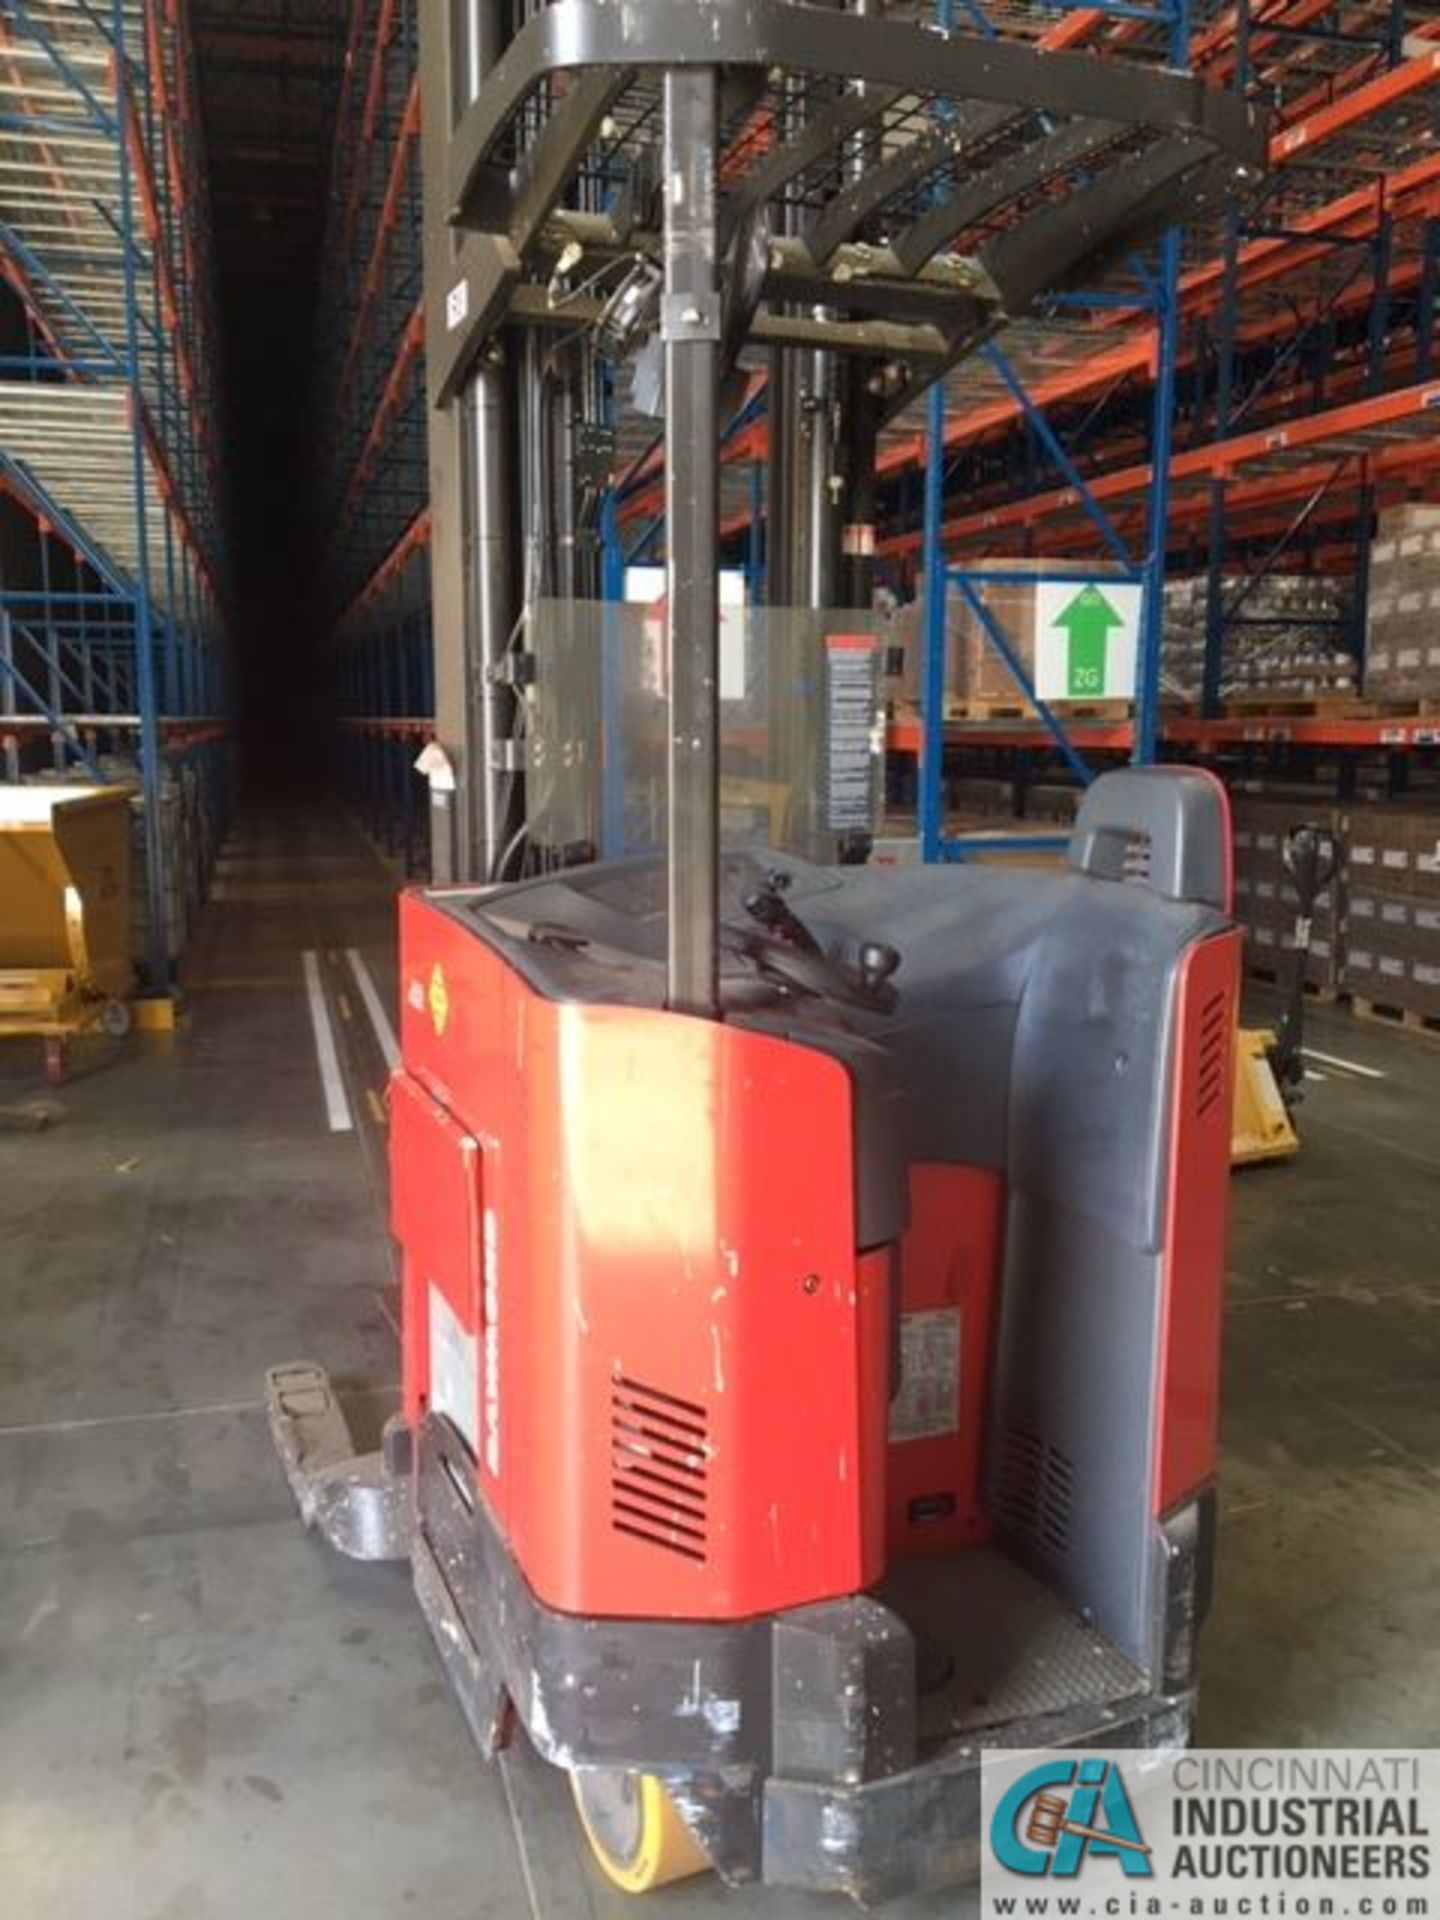 RAYMOND MODEL 750-R45TT ELECTRIC REACH TRUCK; S/N 750-15-BC47246, 36-VOLT BATTERY CHARGER, 36-VOLT - Image 2 of 9